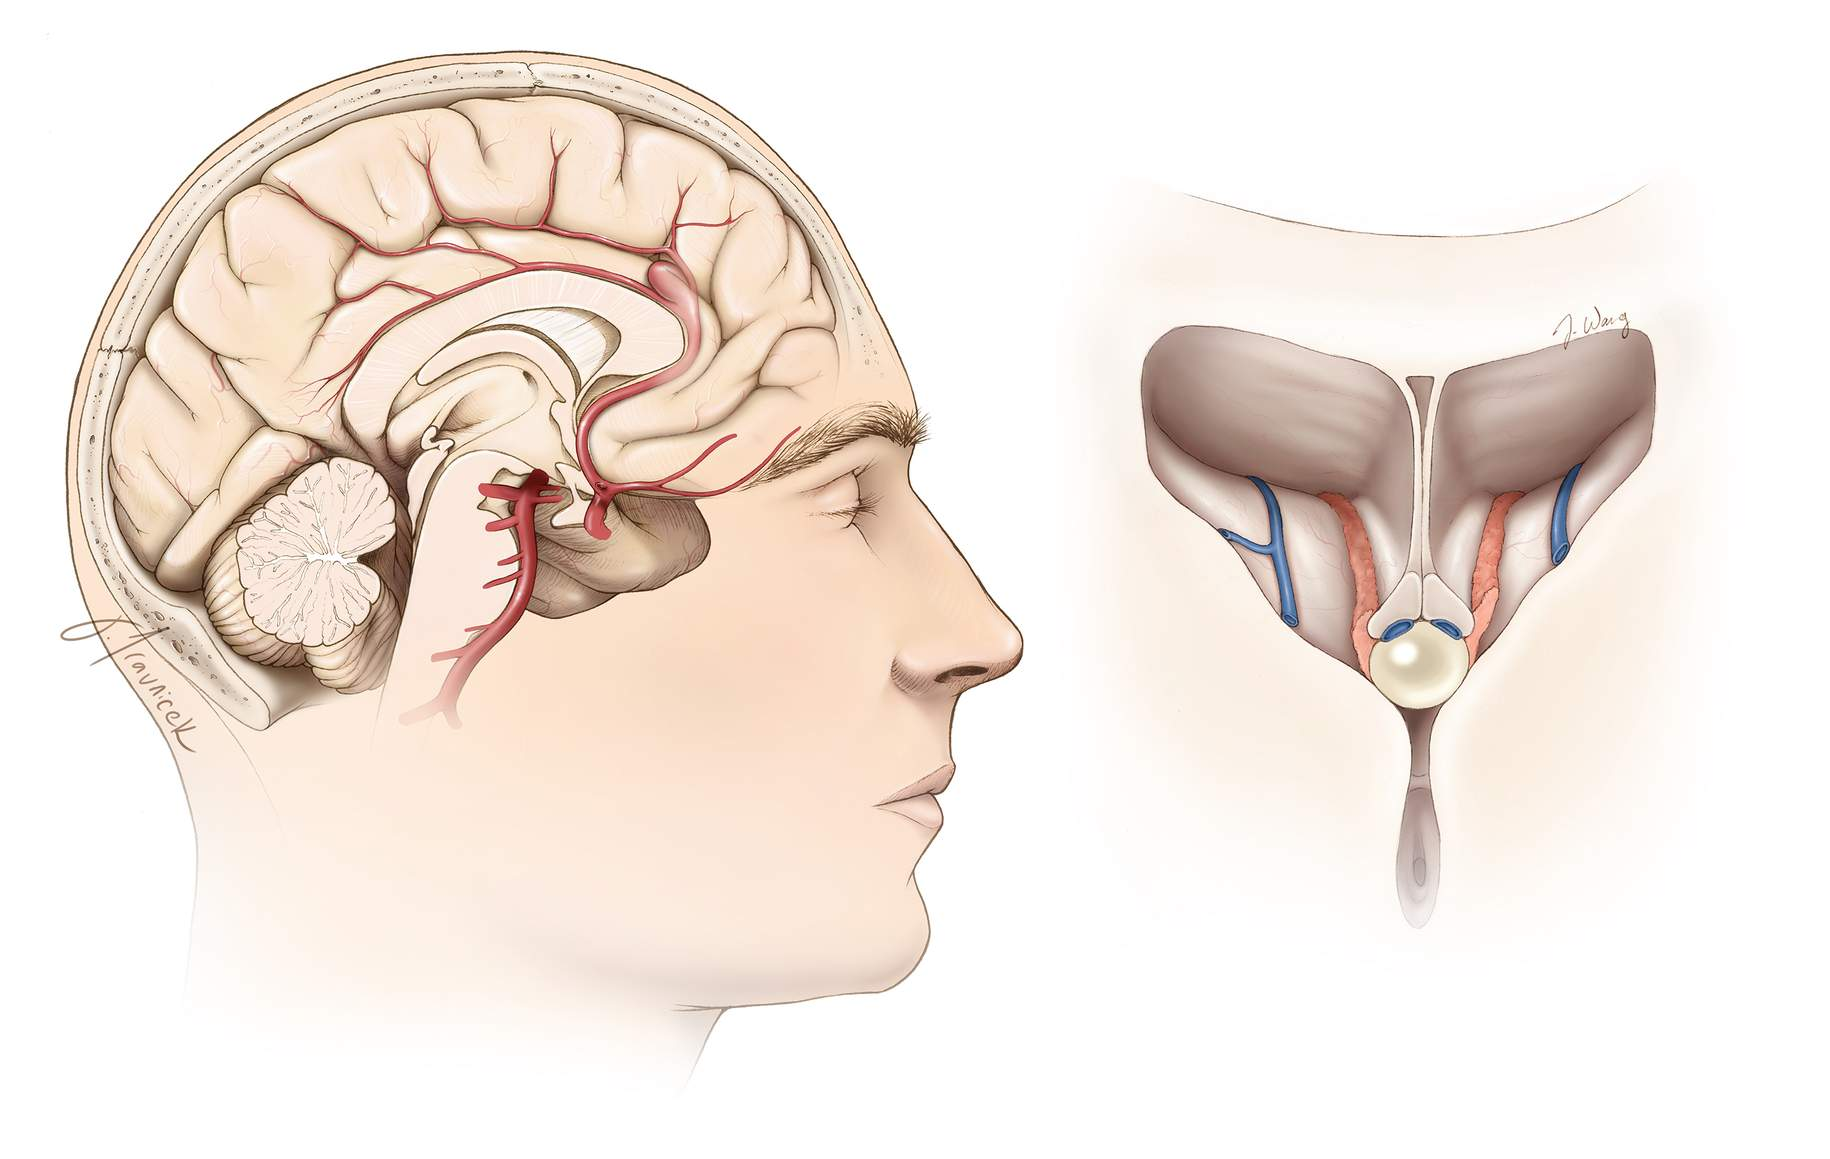 Figure 6: A slightly flexed neck position is reasonable for a pericallosal aneurysm just above the level of the genu (left image). The location of the lesion in relation to the genu determines the degree of neck extension. A  colloid cyst  at the foramen of Monro is accessible through the transcallosal approach (right image). The transcallosal route provides a panoramic view of the choroid plexus and internal cerebral and thalamostriate veins.